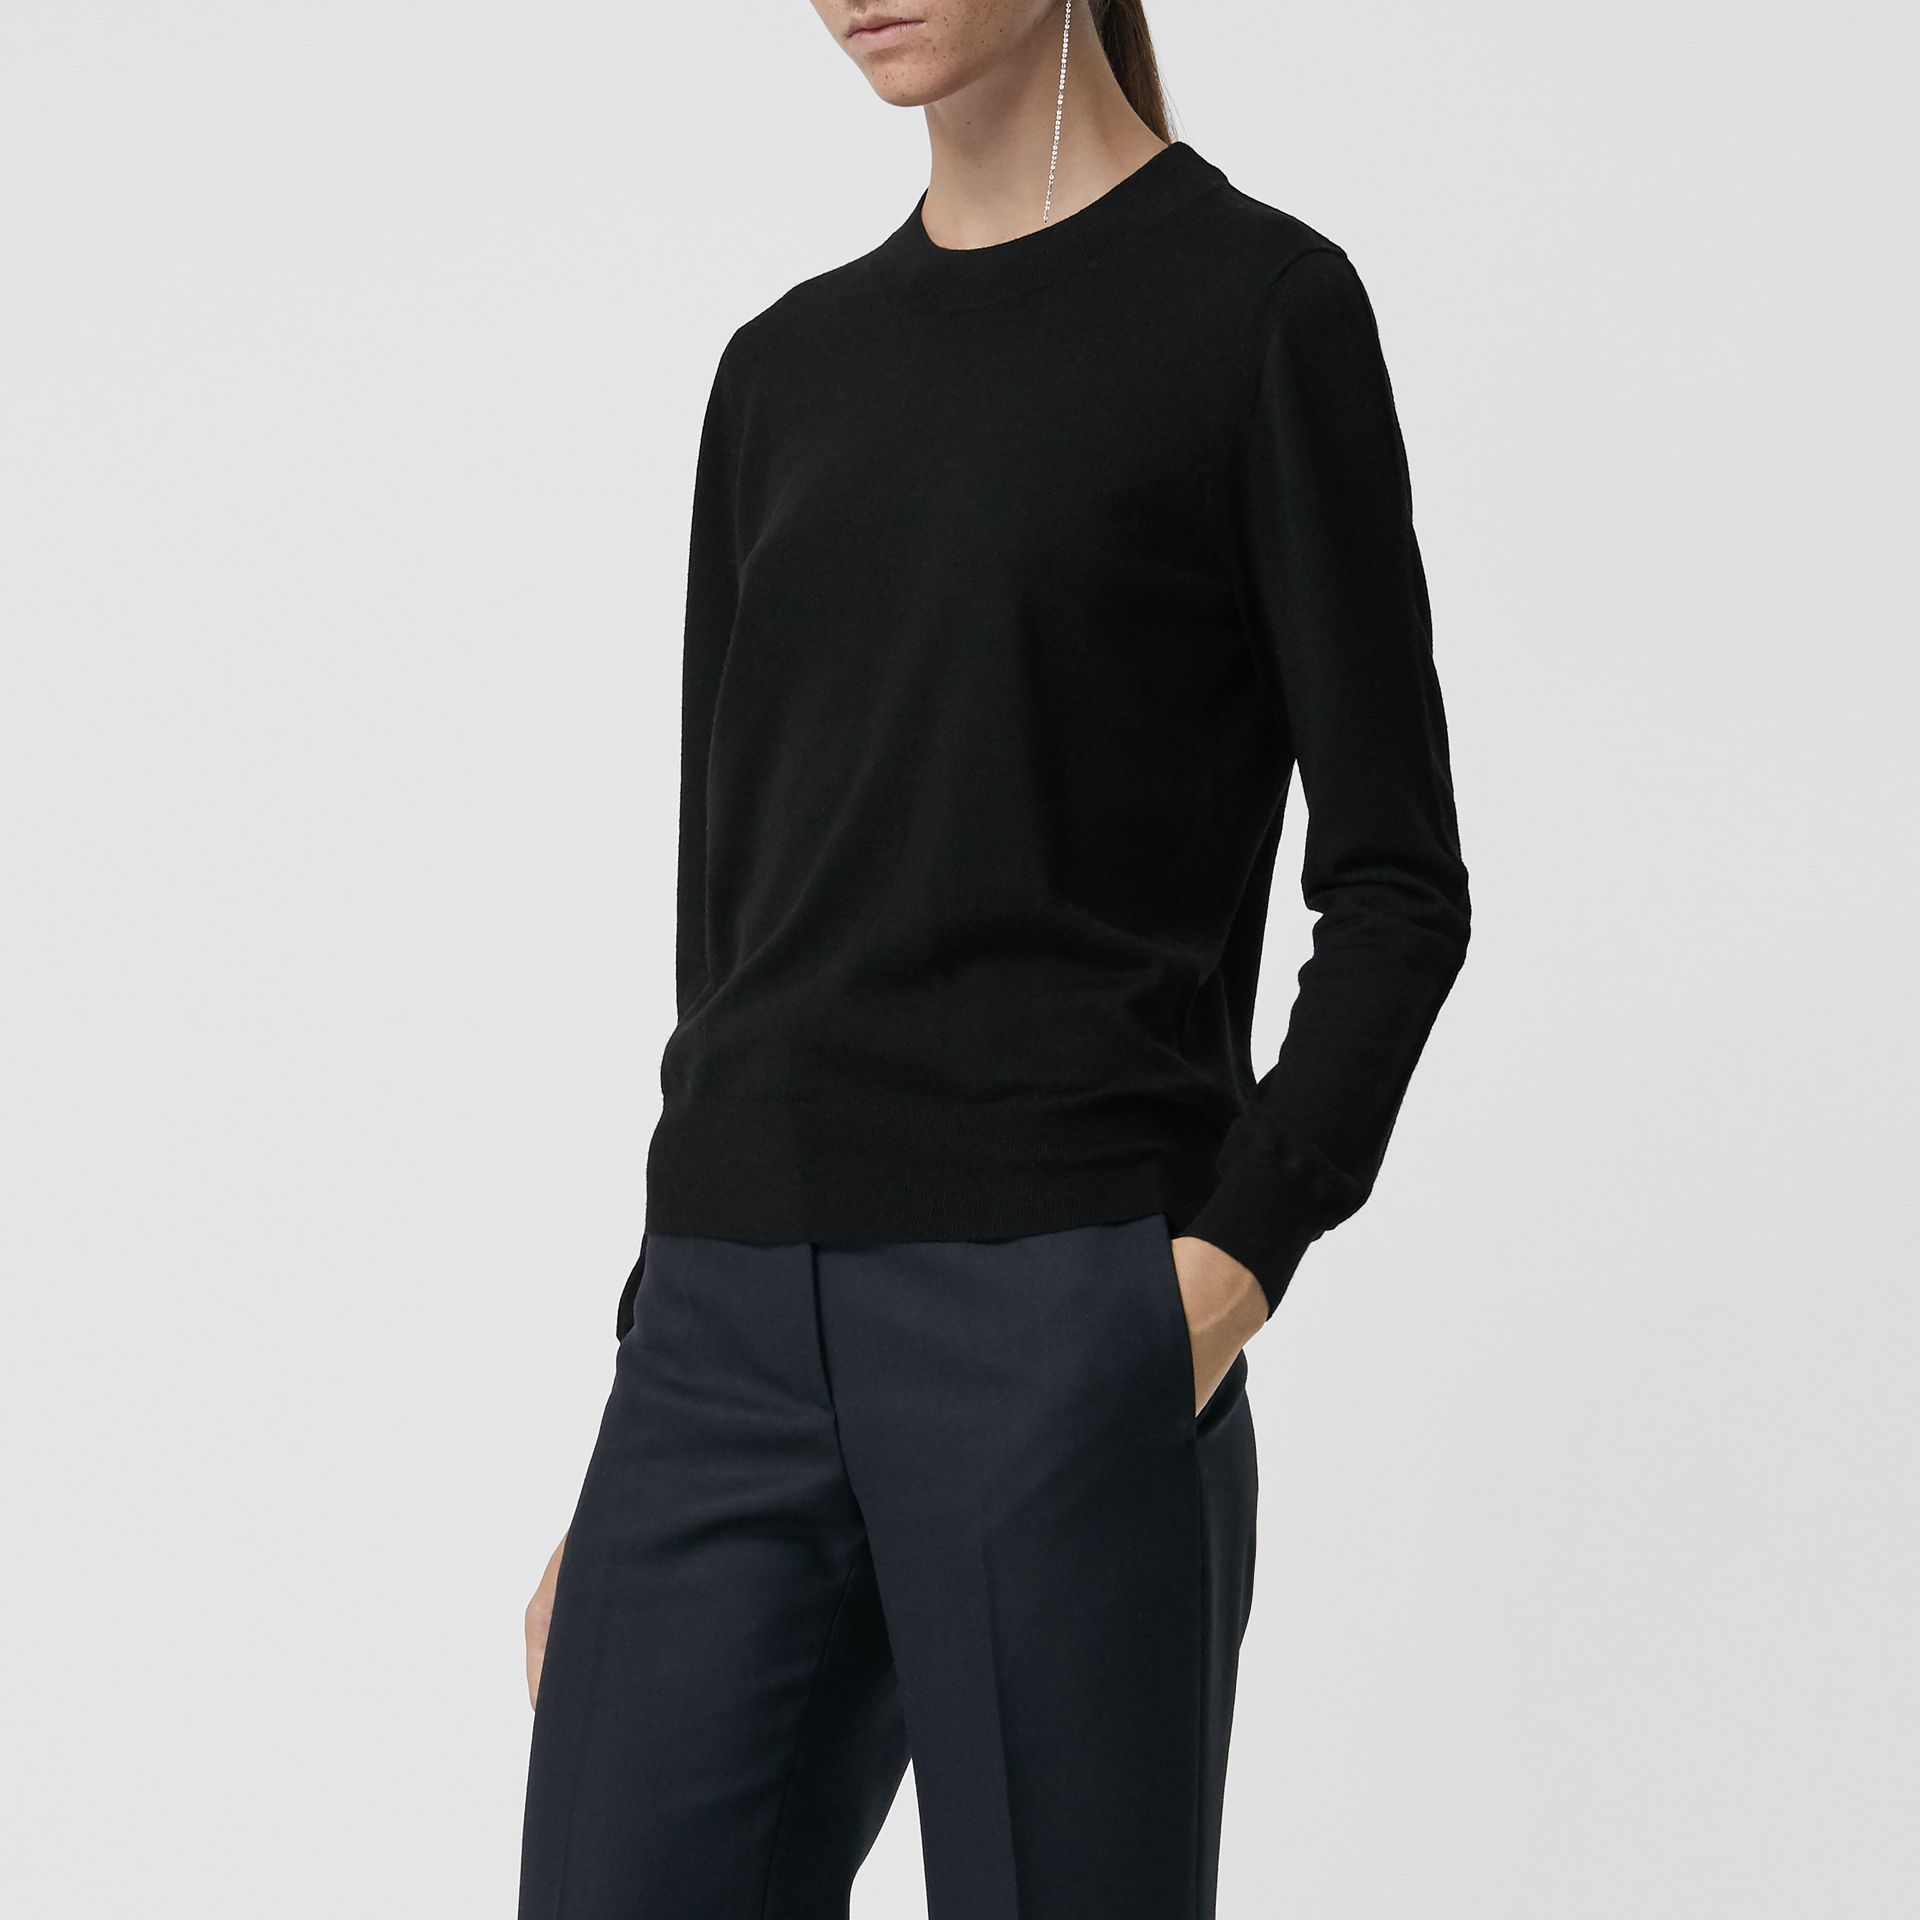 Merino Wool Crew Neck Sweater in Black - Women | Burberry - gallery image 4